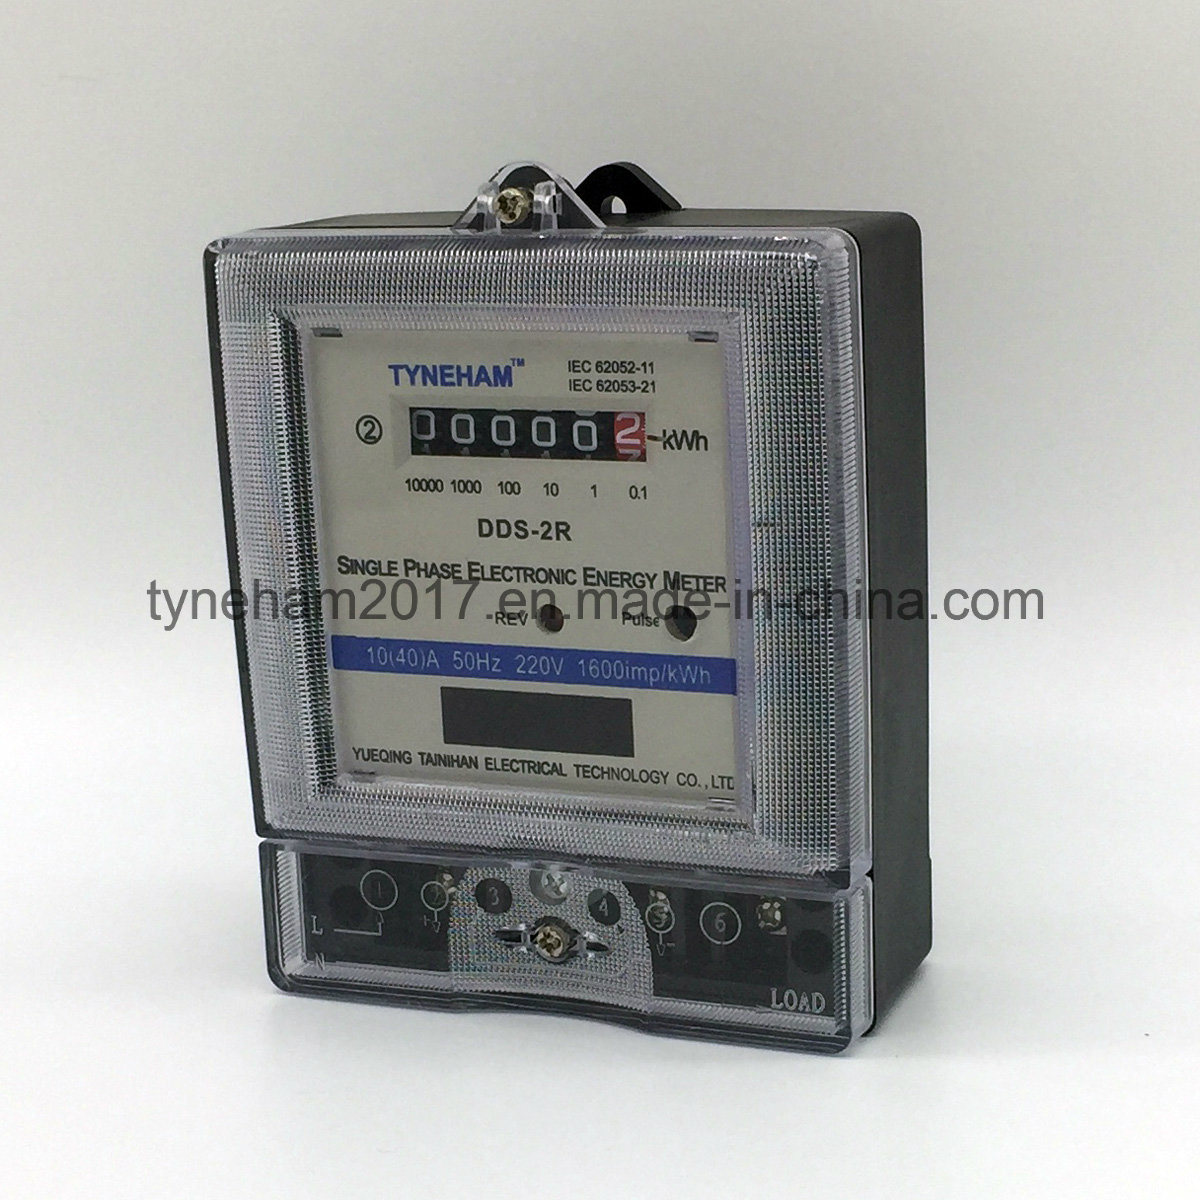 Dds-2r Single Phase Kwh Meter pictures & photos